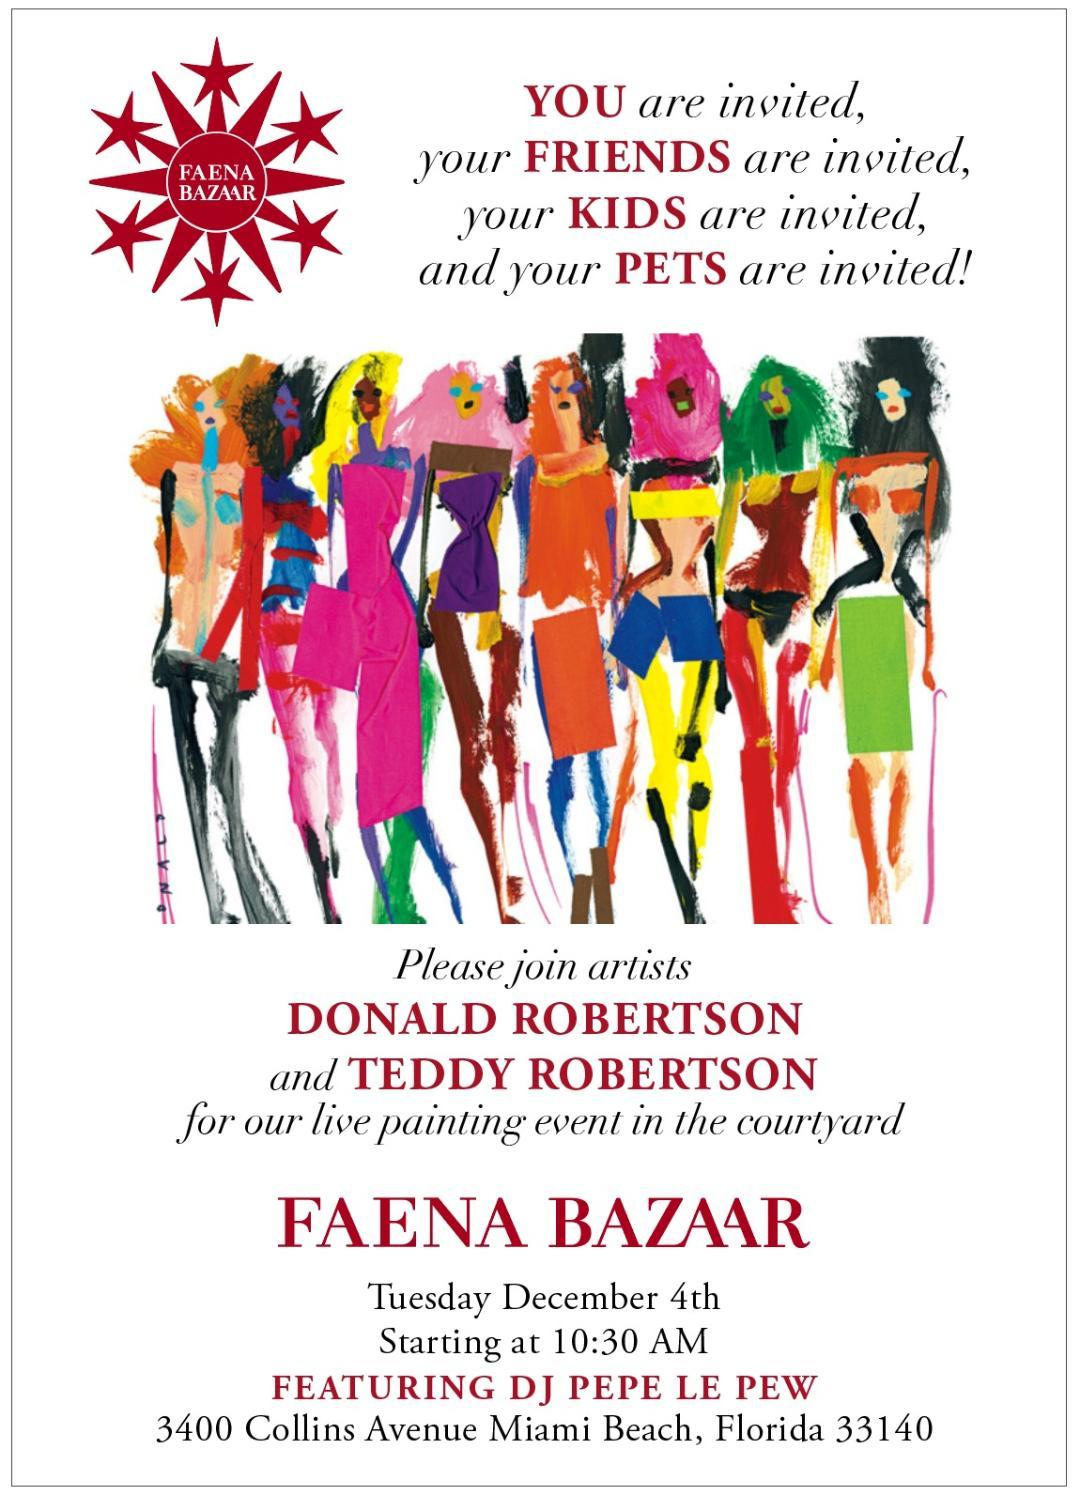 donald robertson and teddy robertson - faena bazaar - florum fashion magazine - live oil painting.png